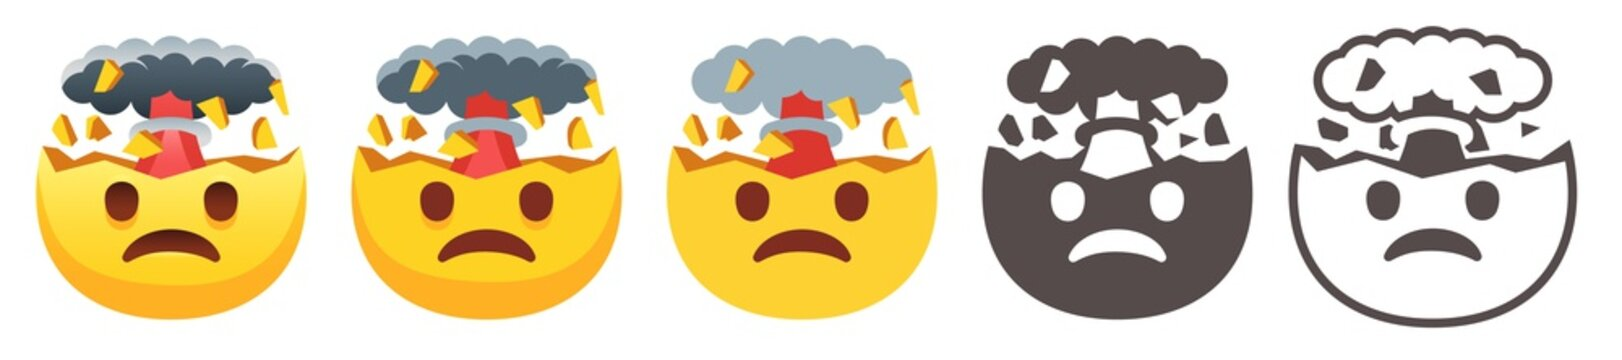 Exploding head emoji. Mind blown emoticon, shocked sad yellow face with brain explosion mushroom cloud flat vector icon set